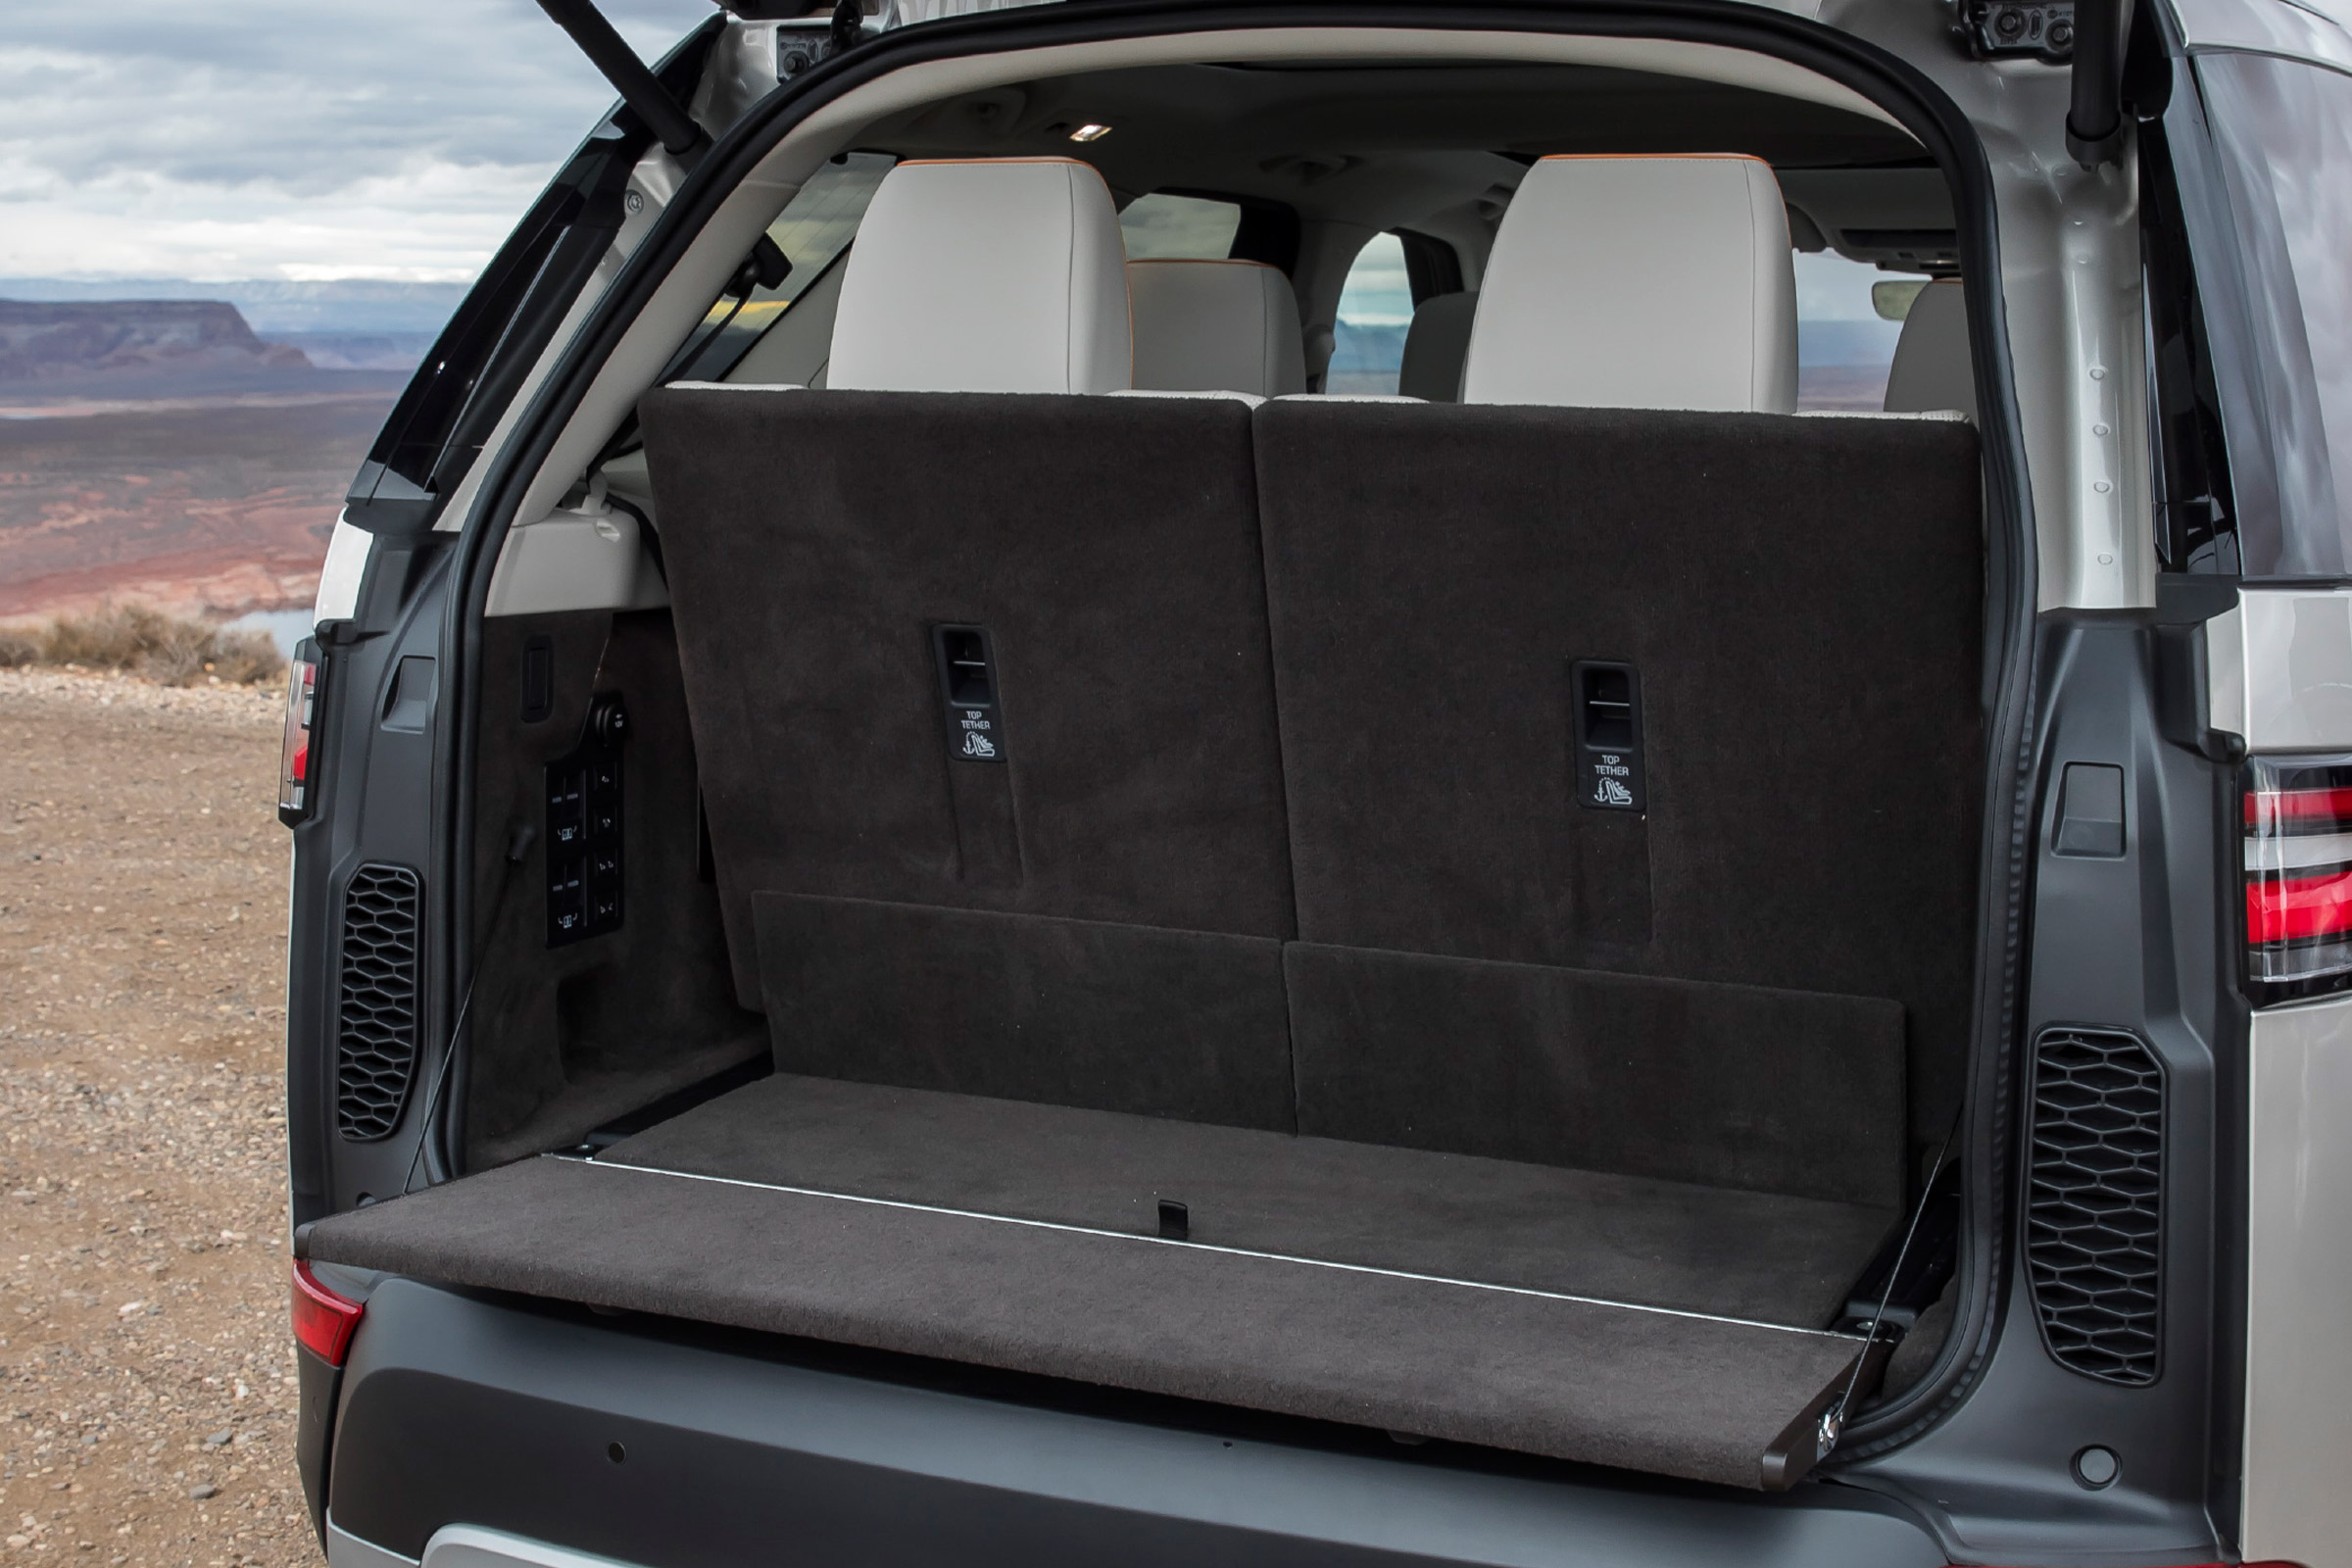 2017 Land Rover Discovery Interior View Cargo (Photo 9 of 17)